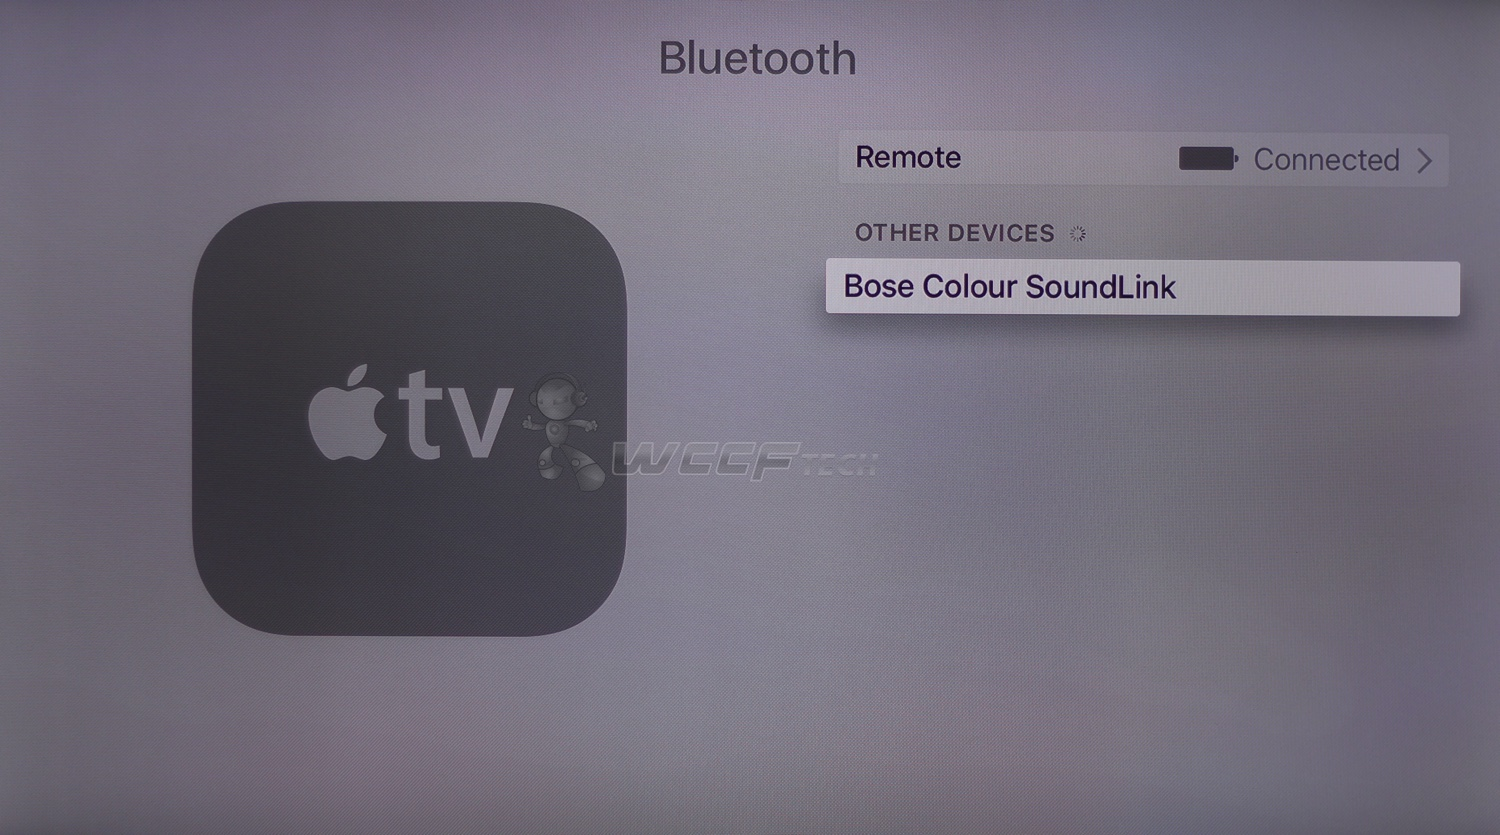 Pair Bluetooth Speakers And Headphones With Apple TV 9 - How To